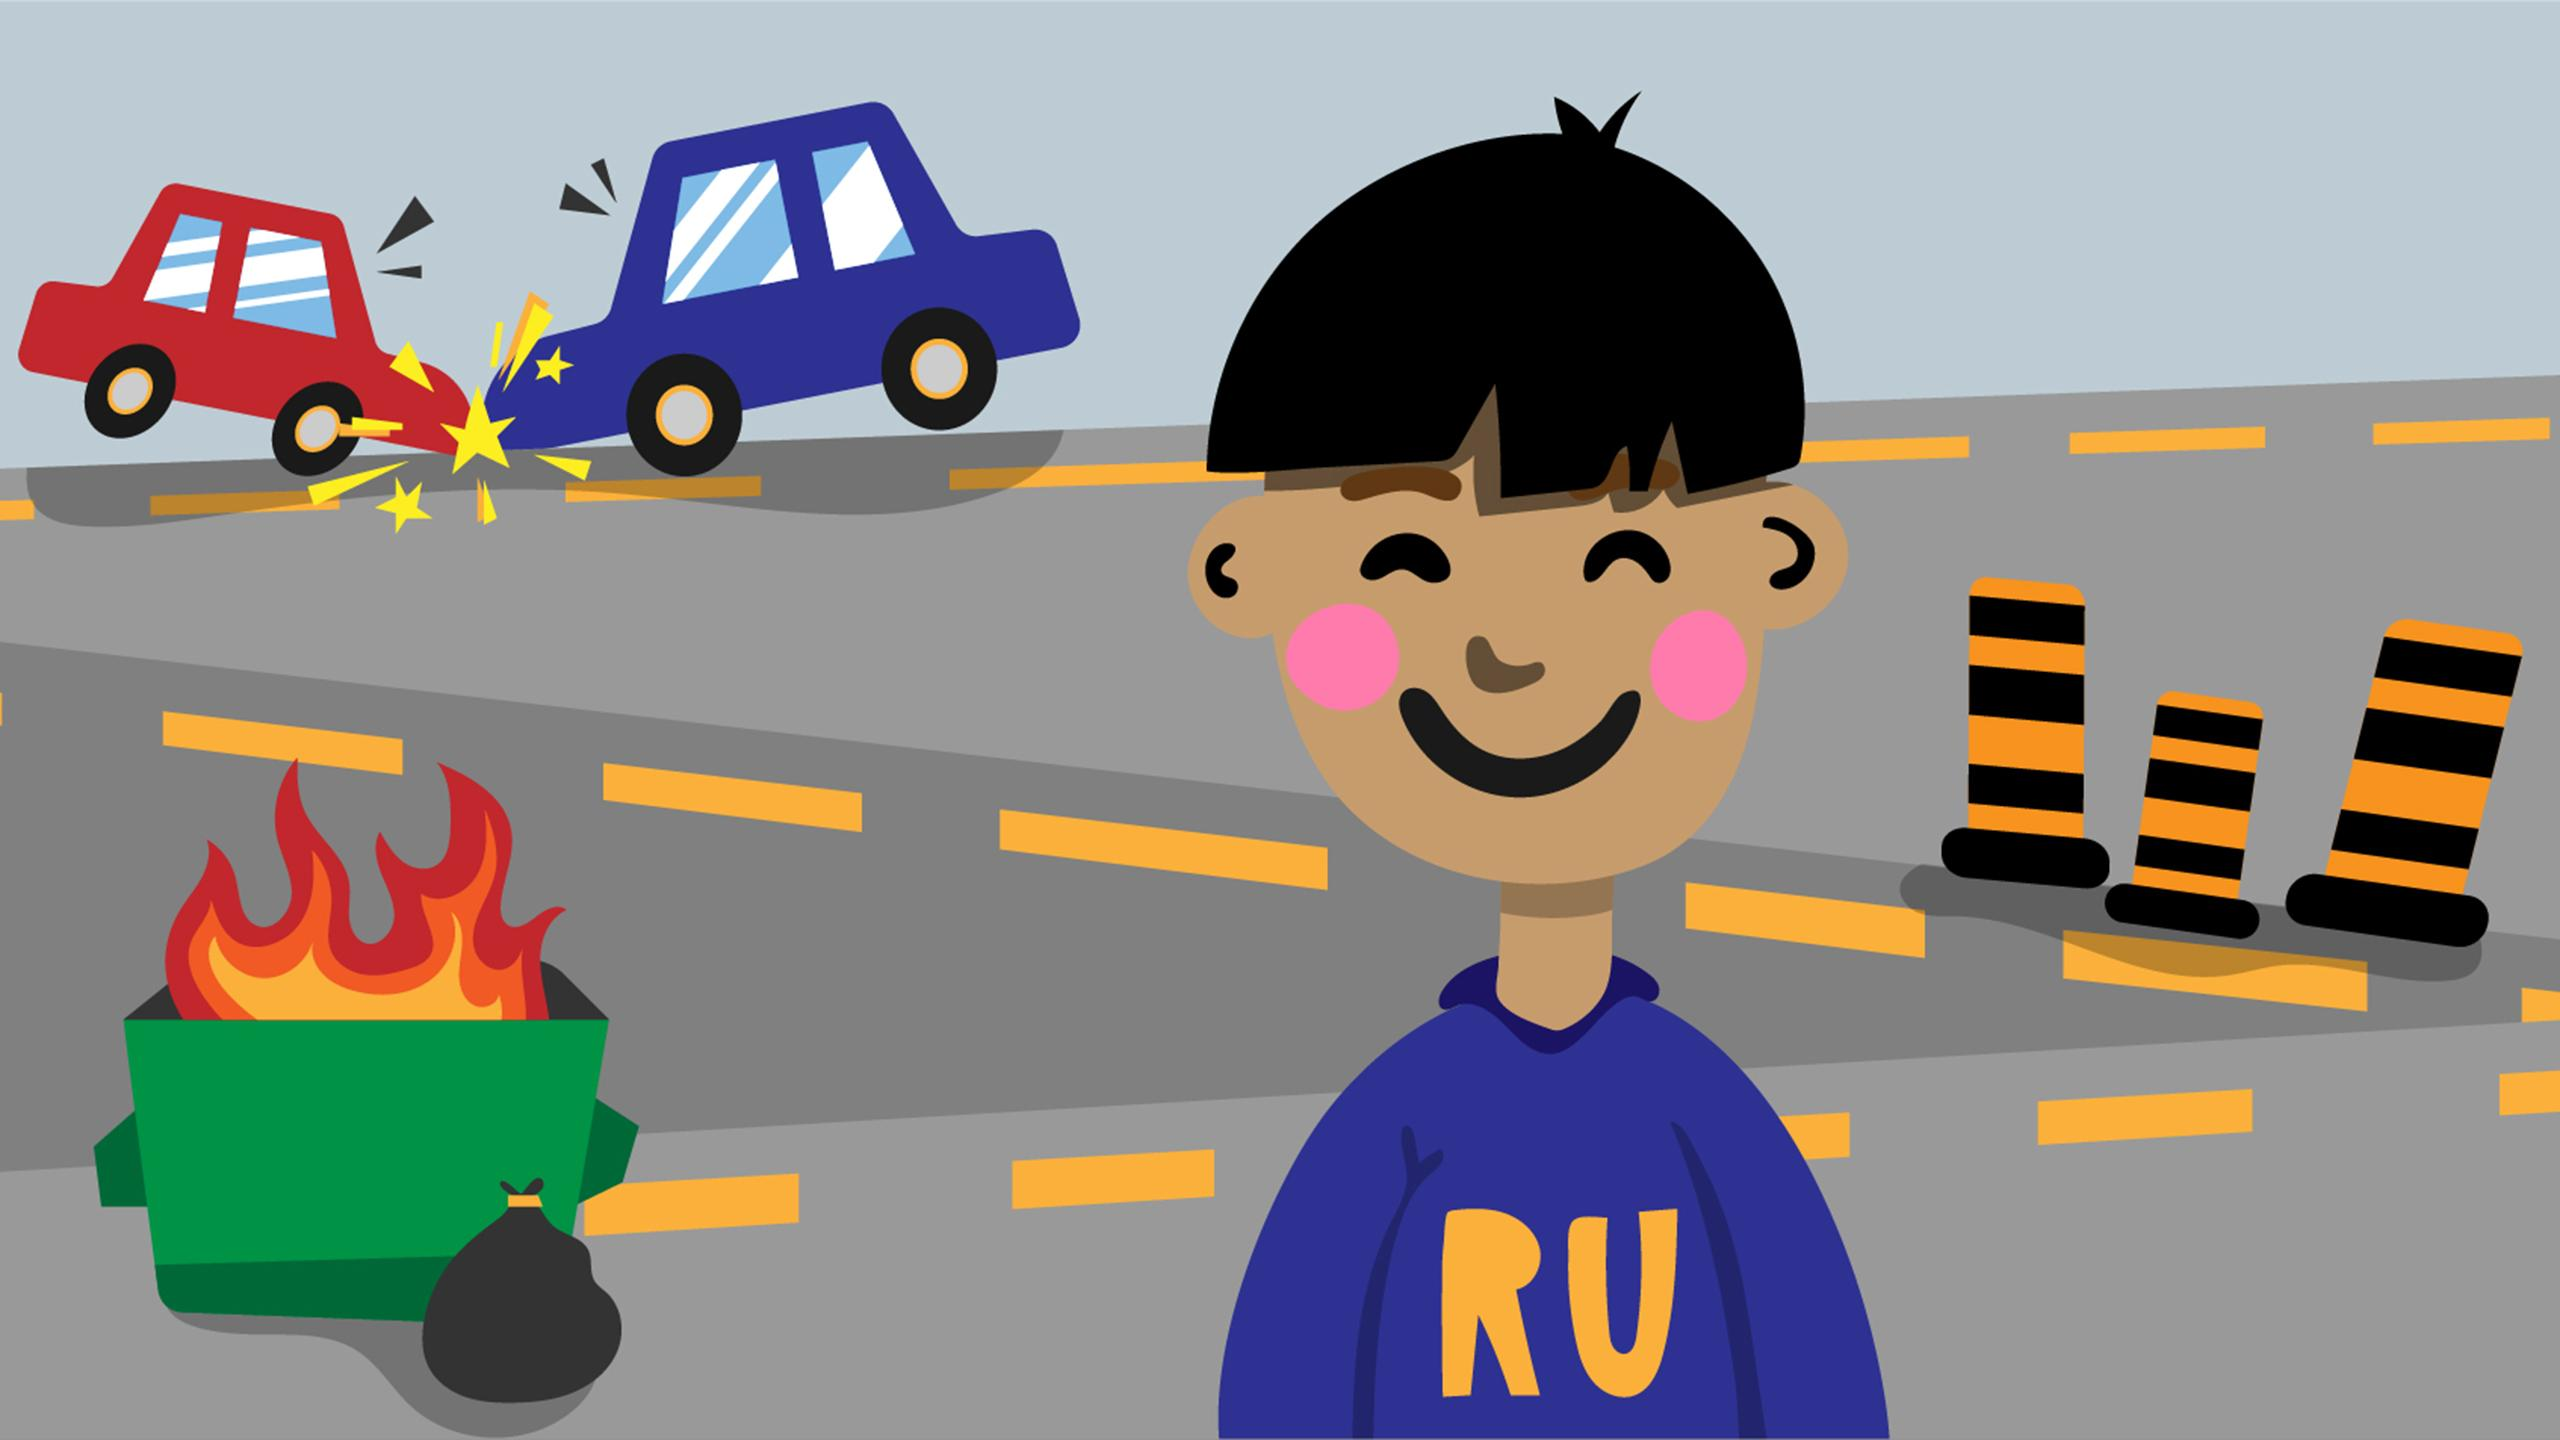 Illustration of a guy smiling and wearing a Ryerson sweater. In the background is a dumpster fire, construction pylons, and a car crash.